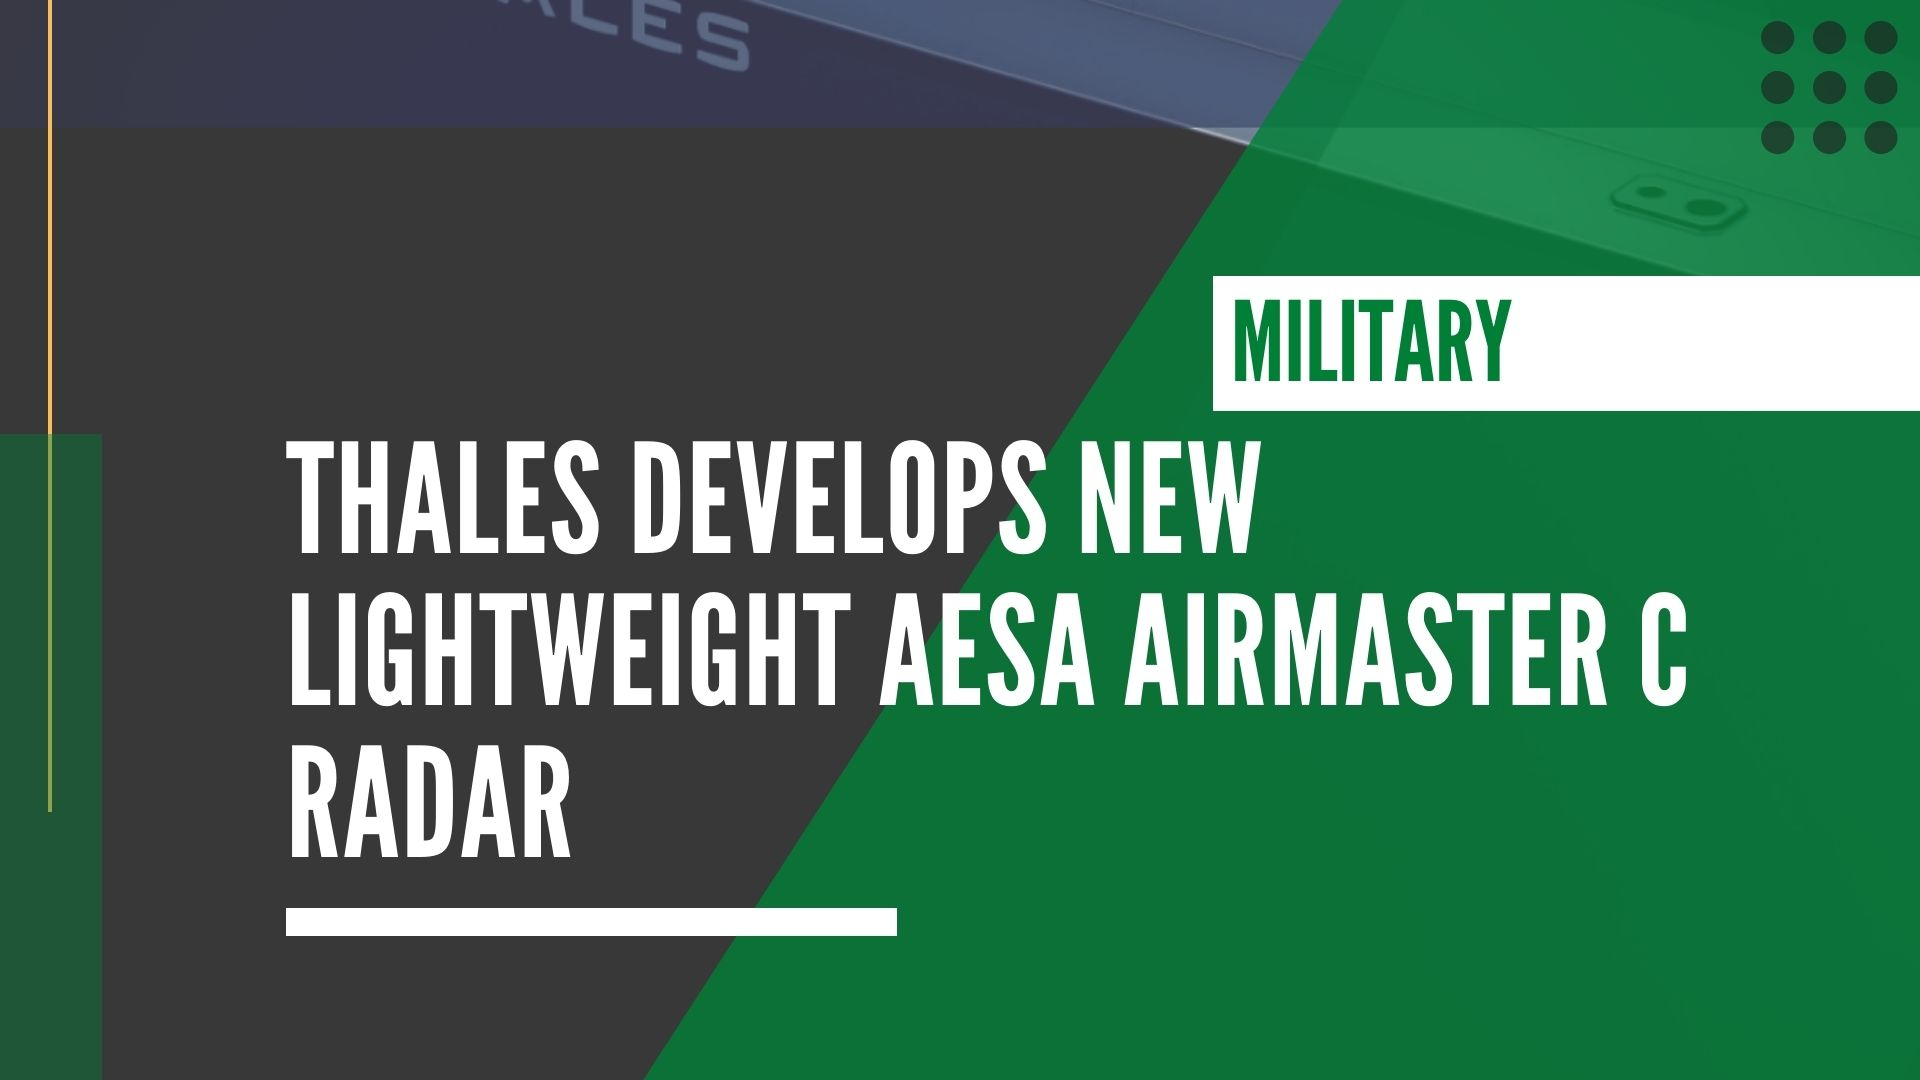 Thales develops new lightweight AESA AirMaster C radar